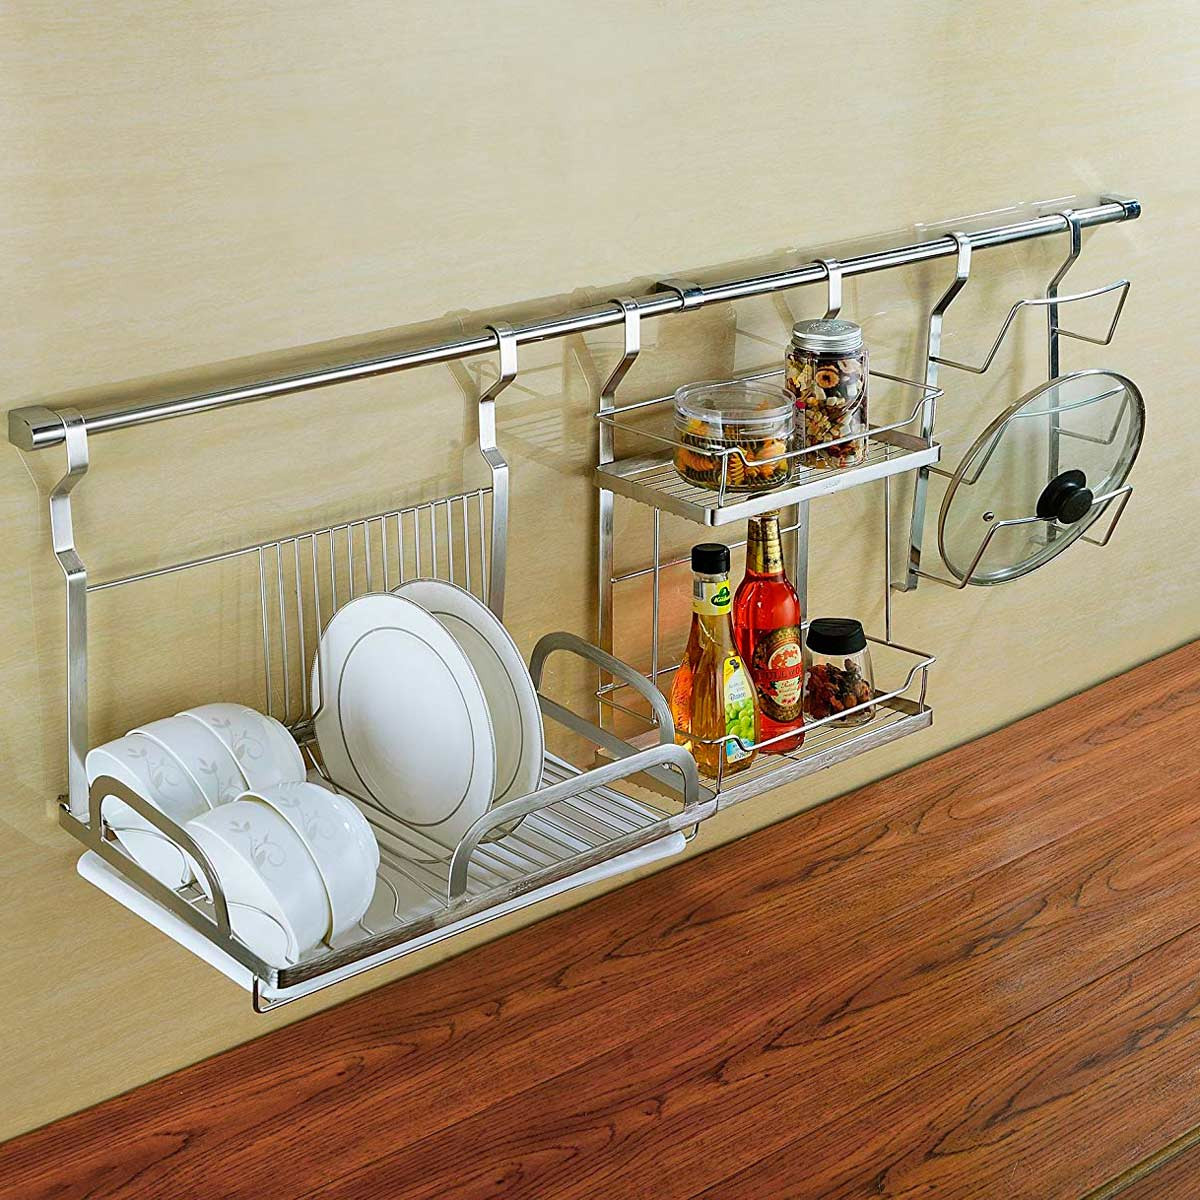 DIY Dish Drying Rack  Our 10 Favorite Dish Drying Racks Family Handyman